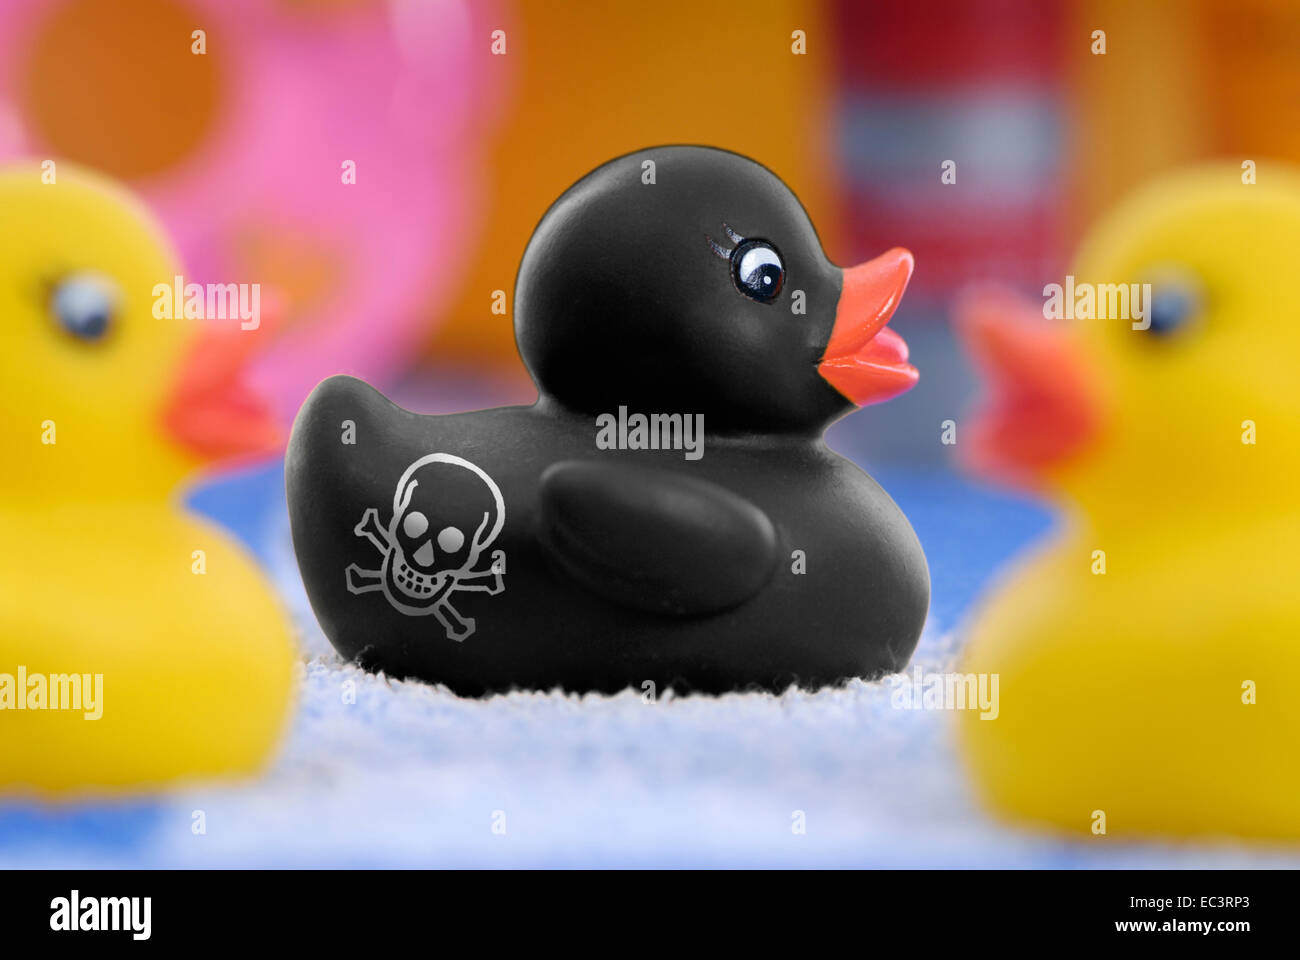 Black rubber duck labeled with skull, polycyclic aromatic hydrocarbons - Stock Image